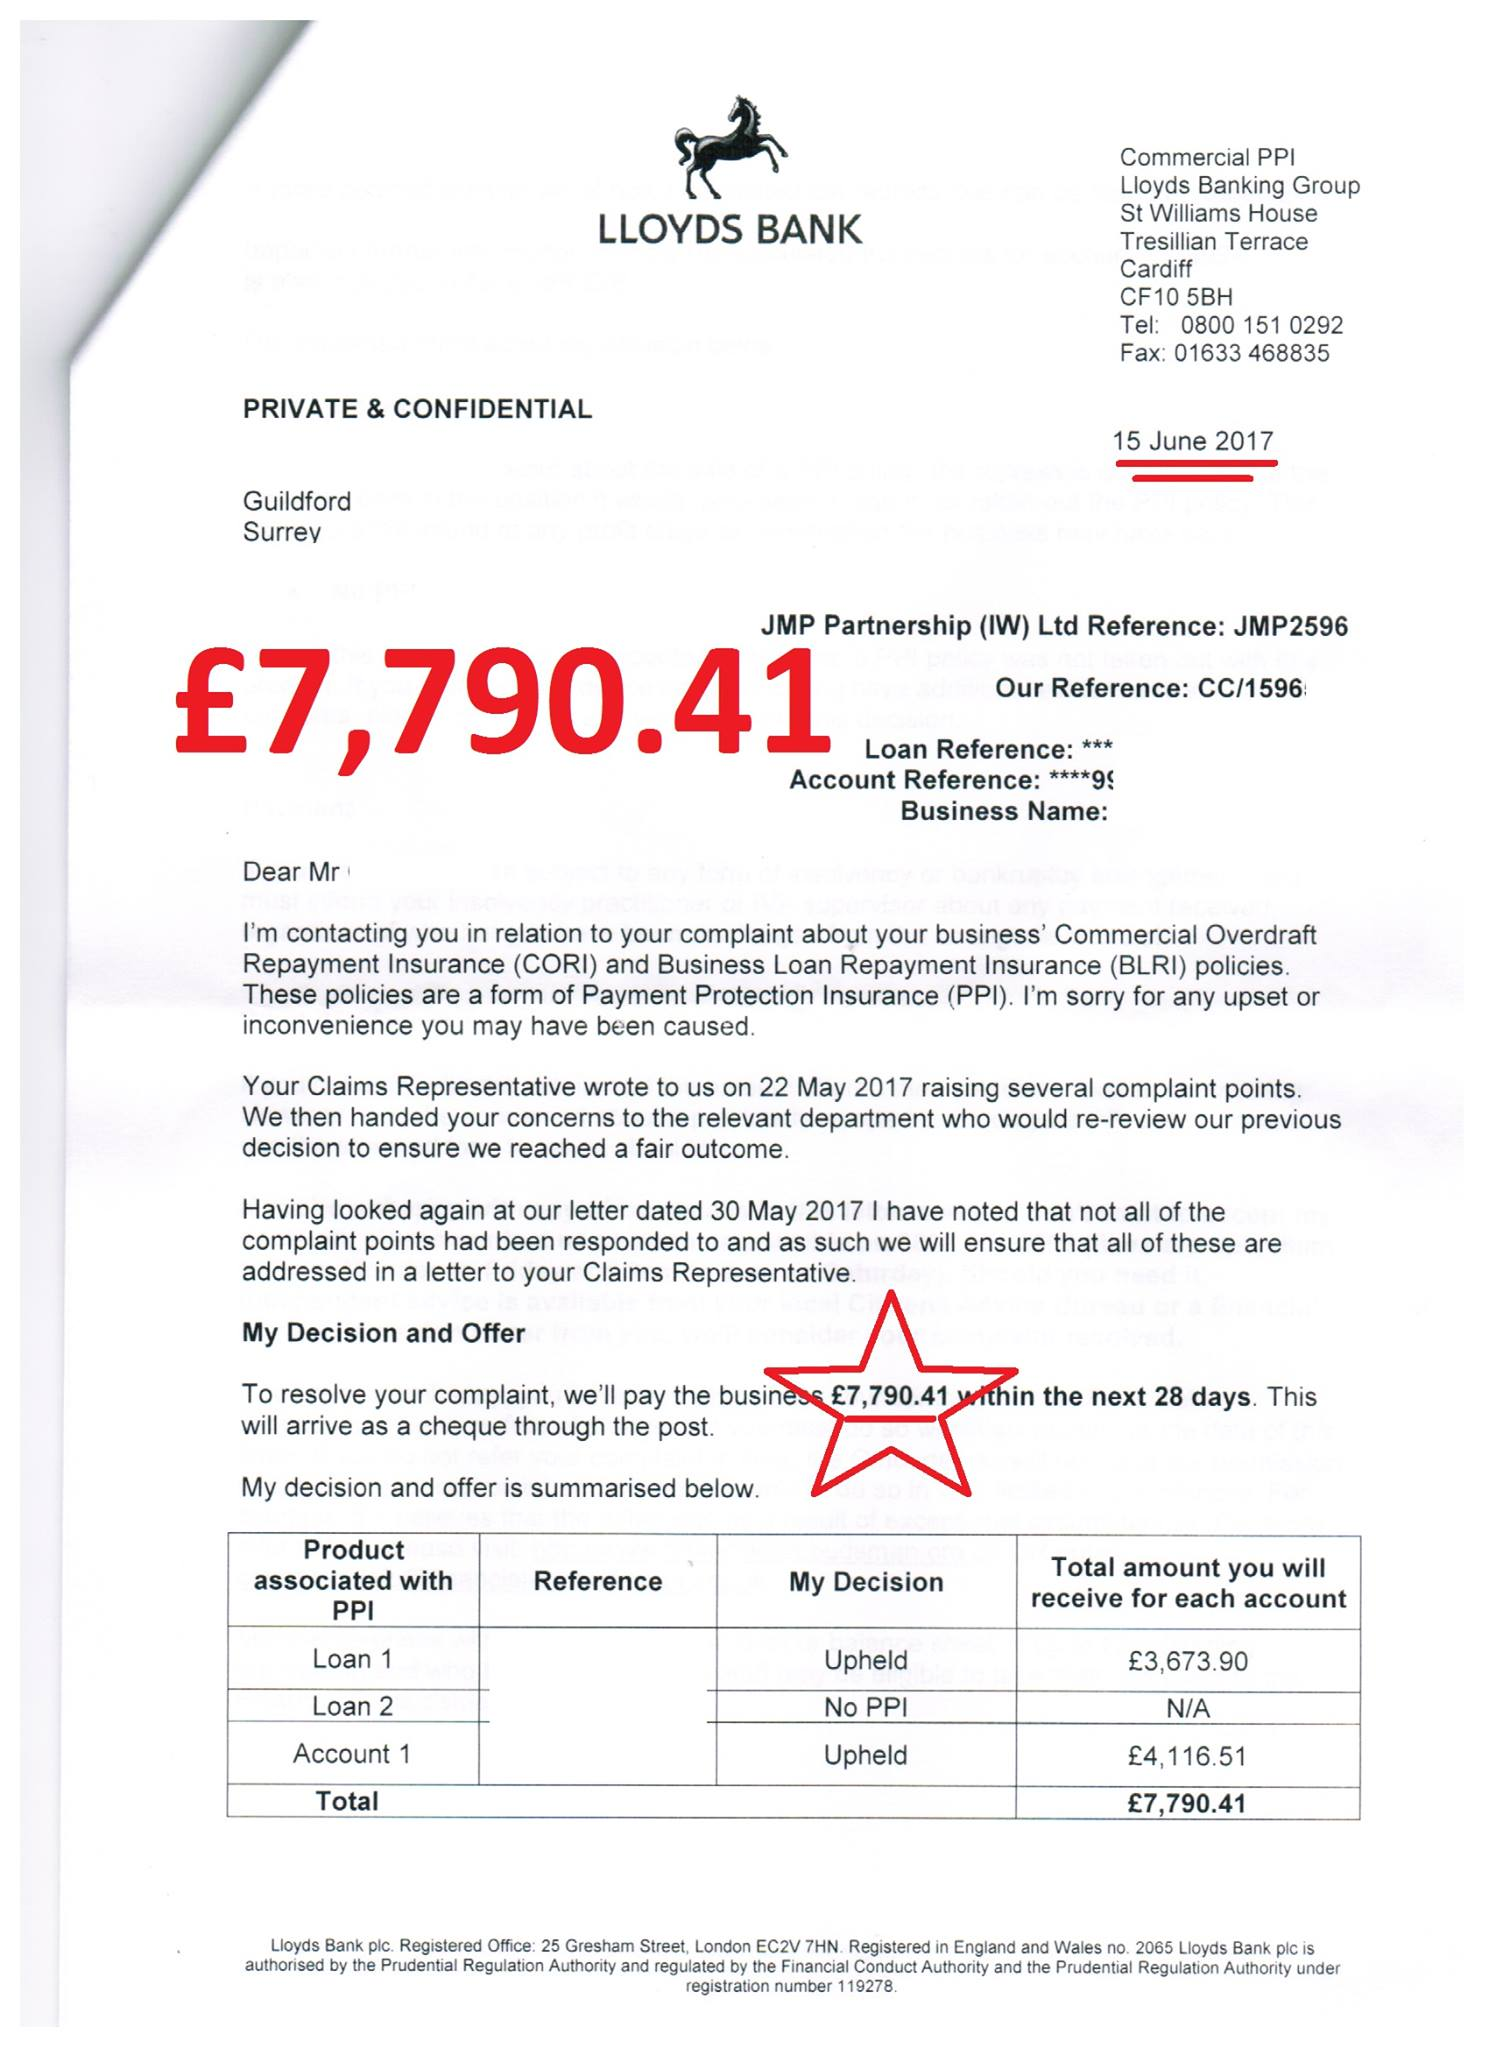 Hall of shame jmp partnership for Ppi claim template letter to bank